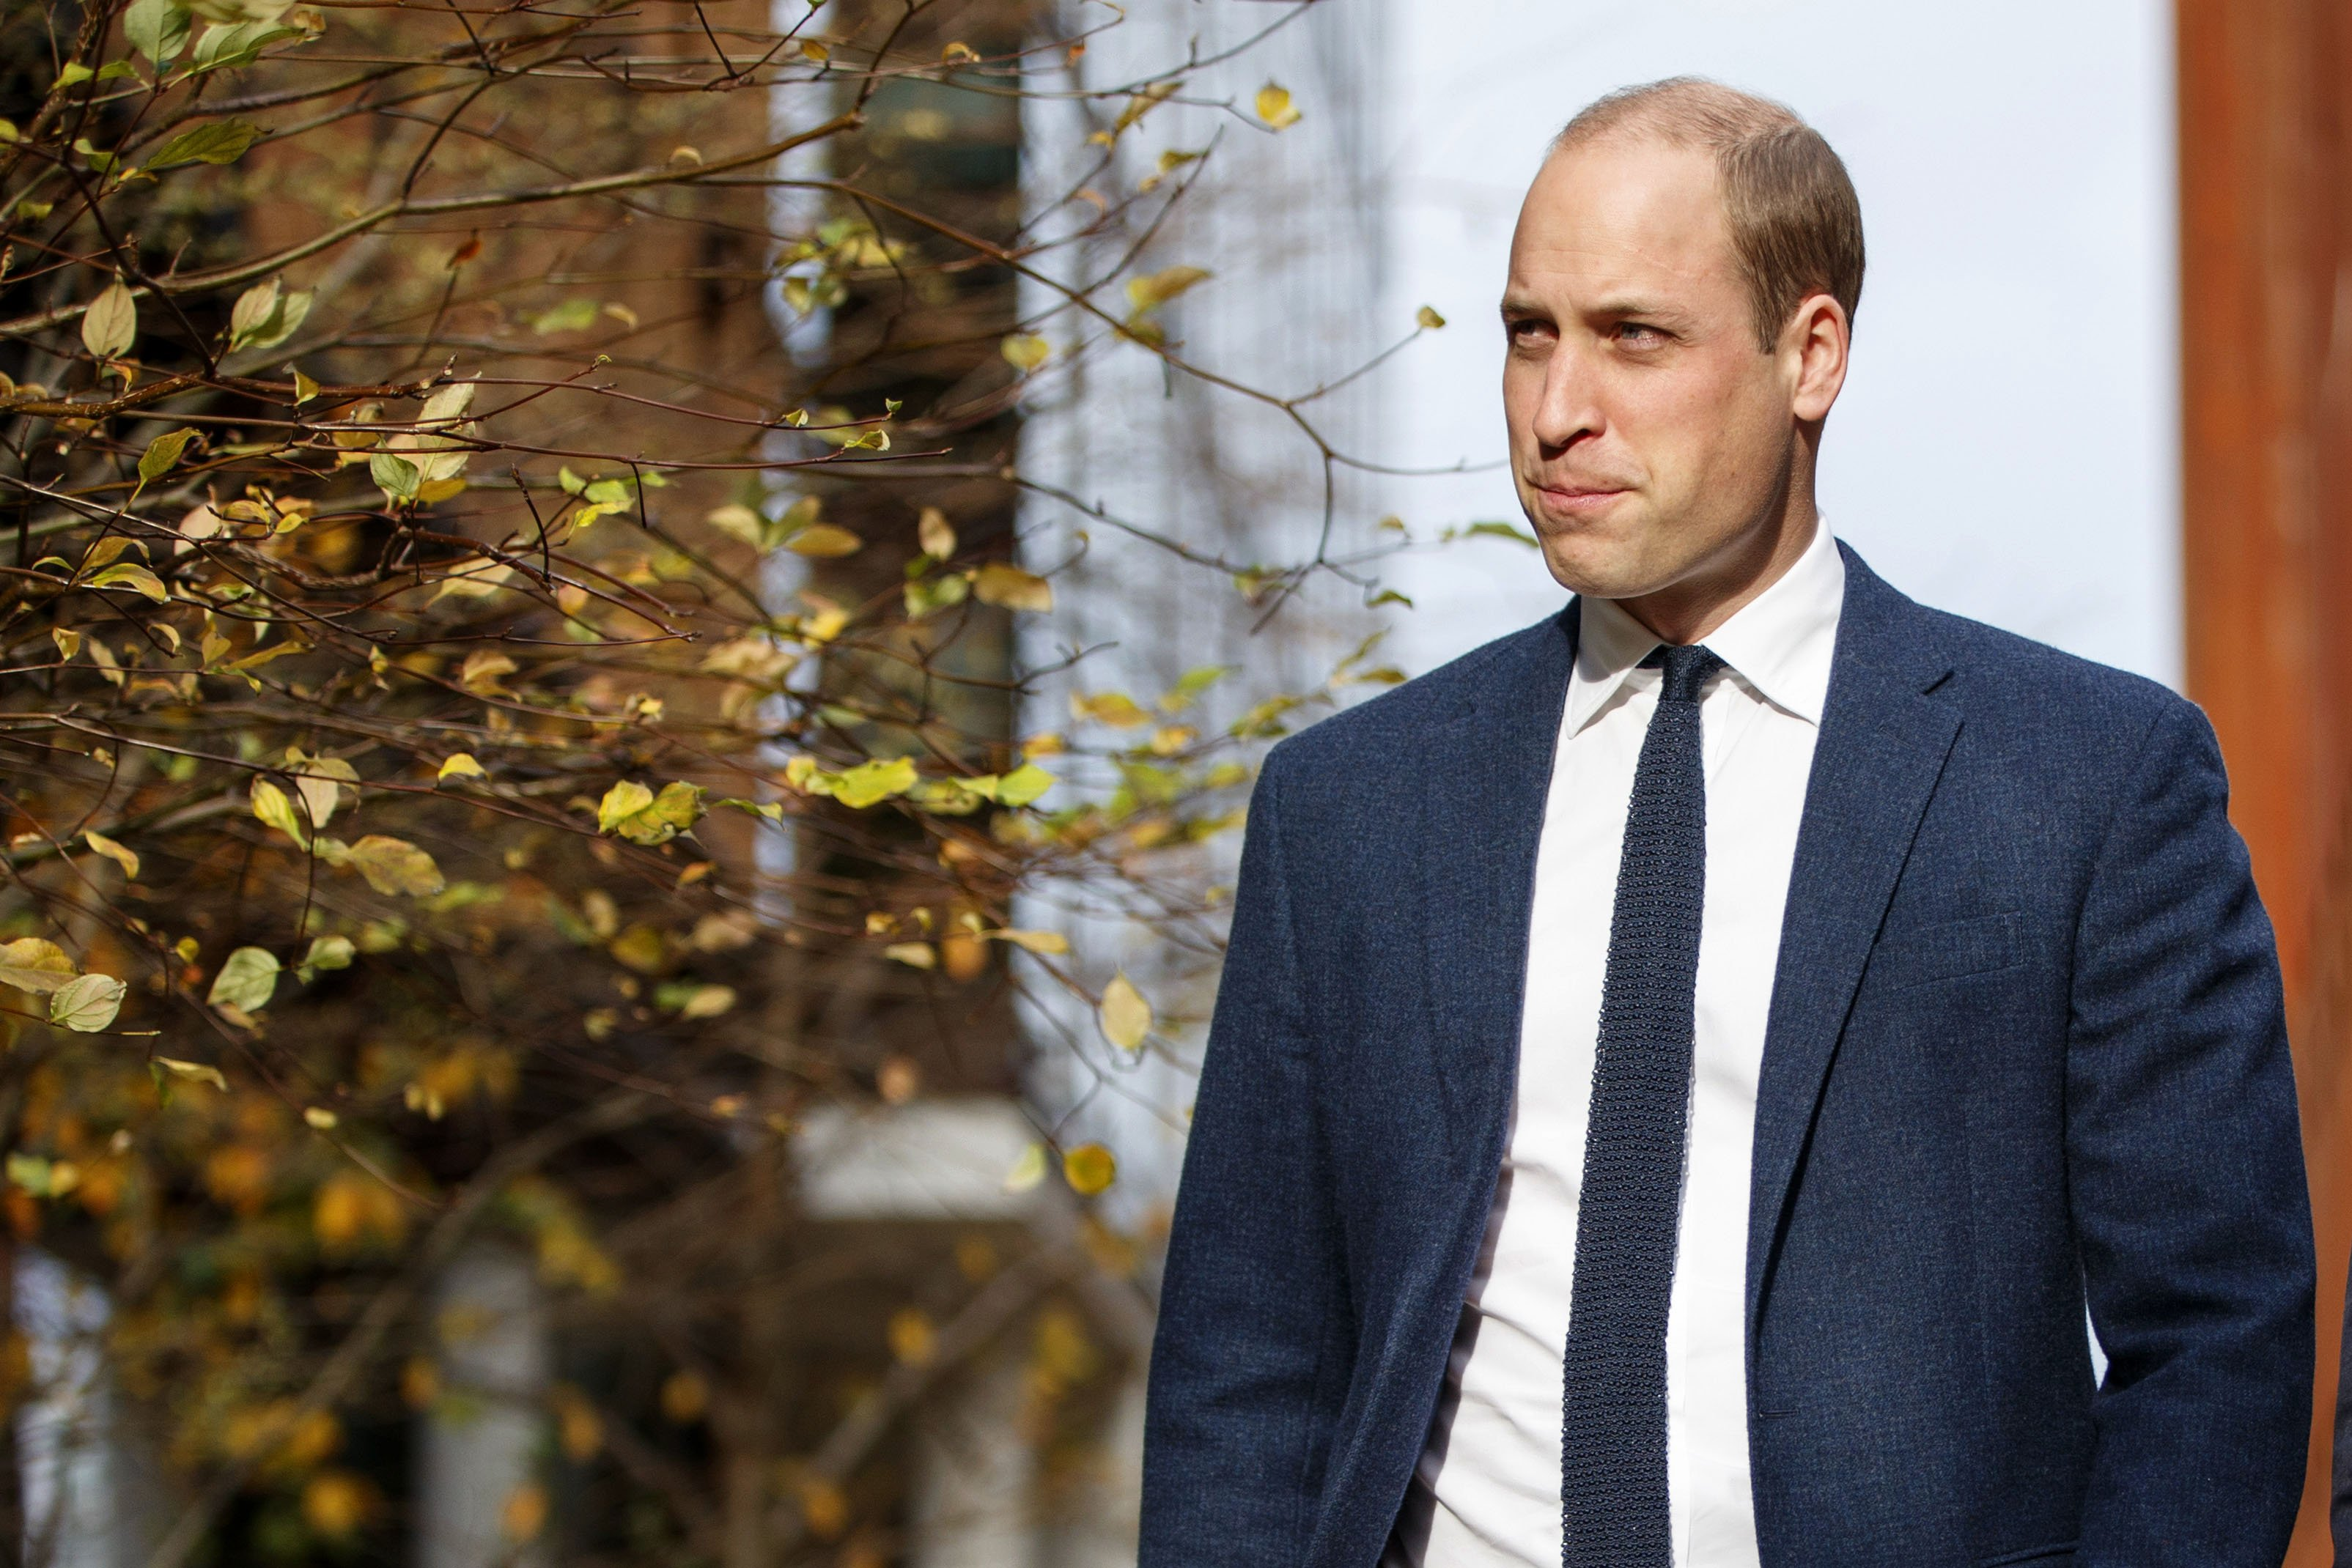 Prince William visits the Google & YouTube's launch of a National Action Plan to tackle cyberbullying, 2017, London, England. | Photo: Getty Images